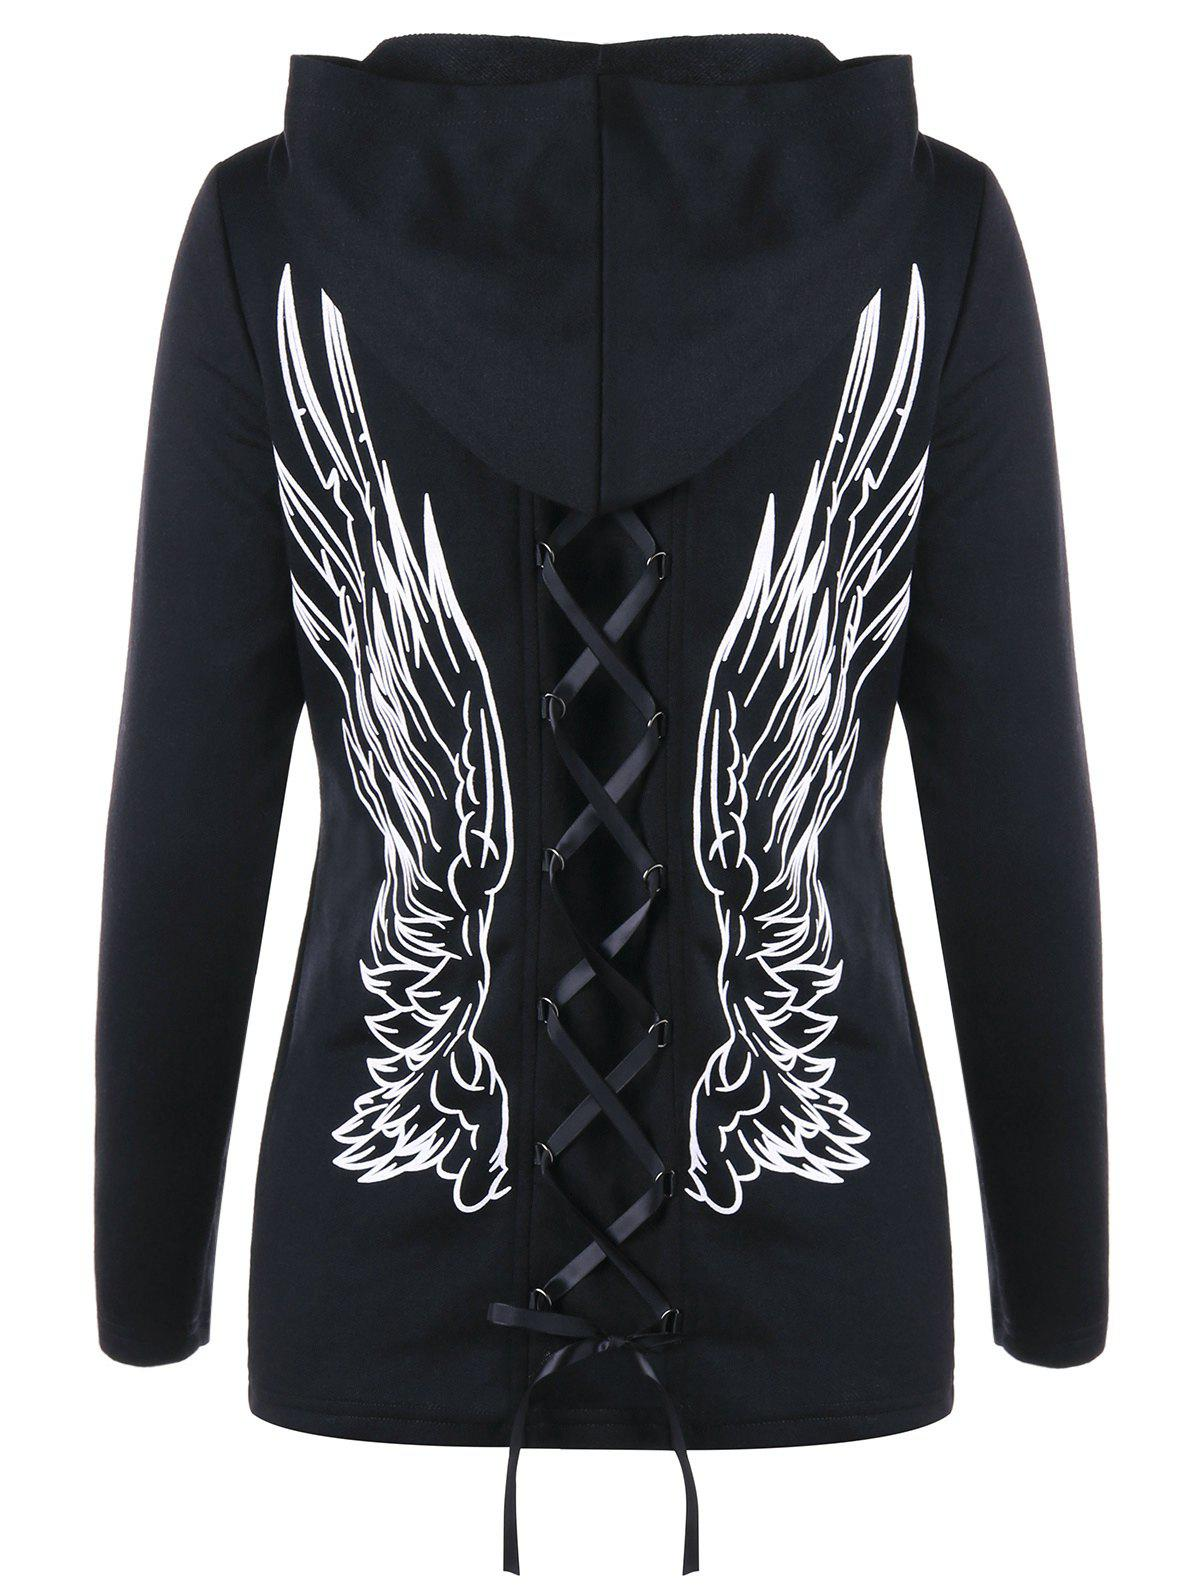 Zip Up Wings Print Double Lace-up HoodieWOMEN<br><br>Size: 2XL; Color: BLACK; Material: Polyester; Shirt Length: Regular; Sleeve Length: Full; Style: Fashion; Pattern Style: Others; Season: Fall,Spring; Weight: 0.4810kg; Package Contents: 1 x Hoodie;